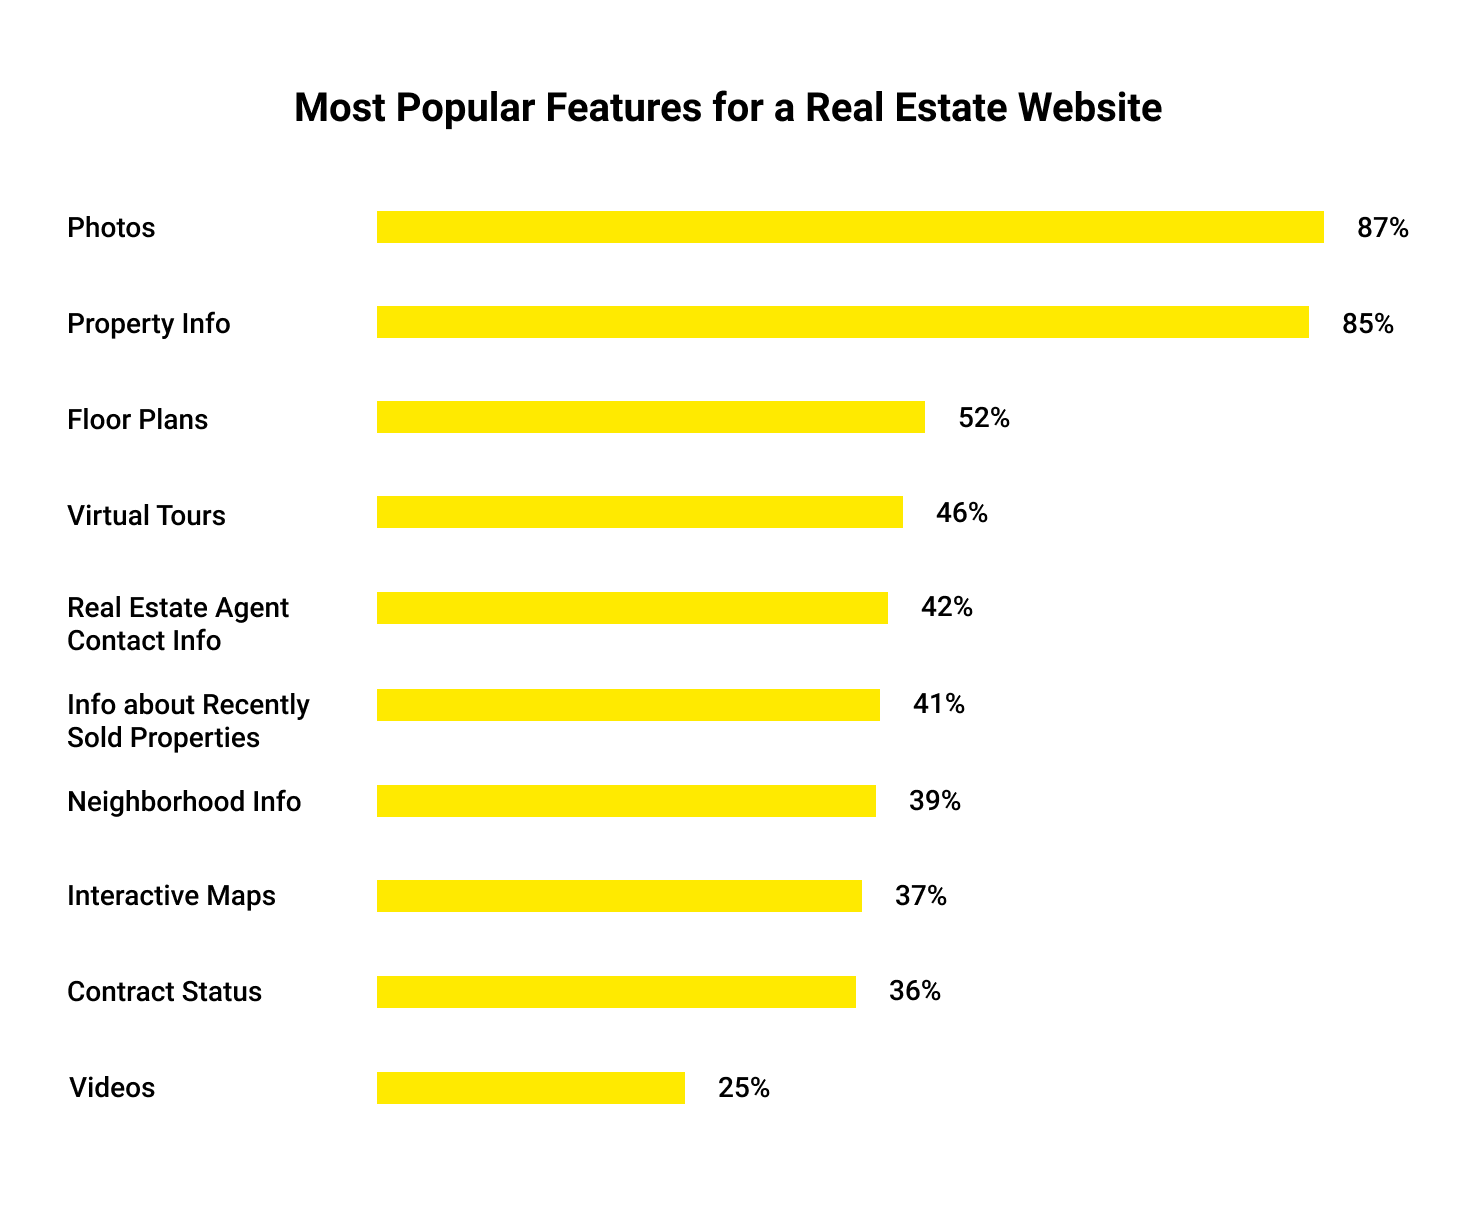 Real Estate Trends in 2020: nost popular features for a real estate website